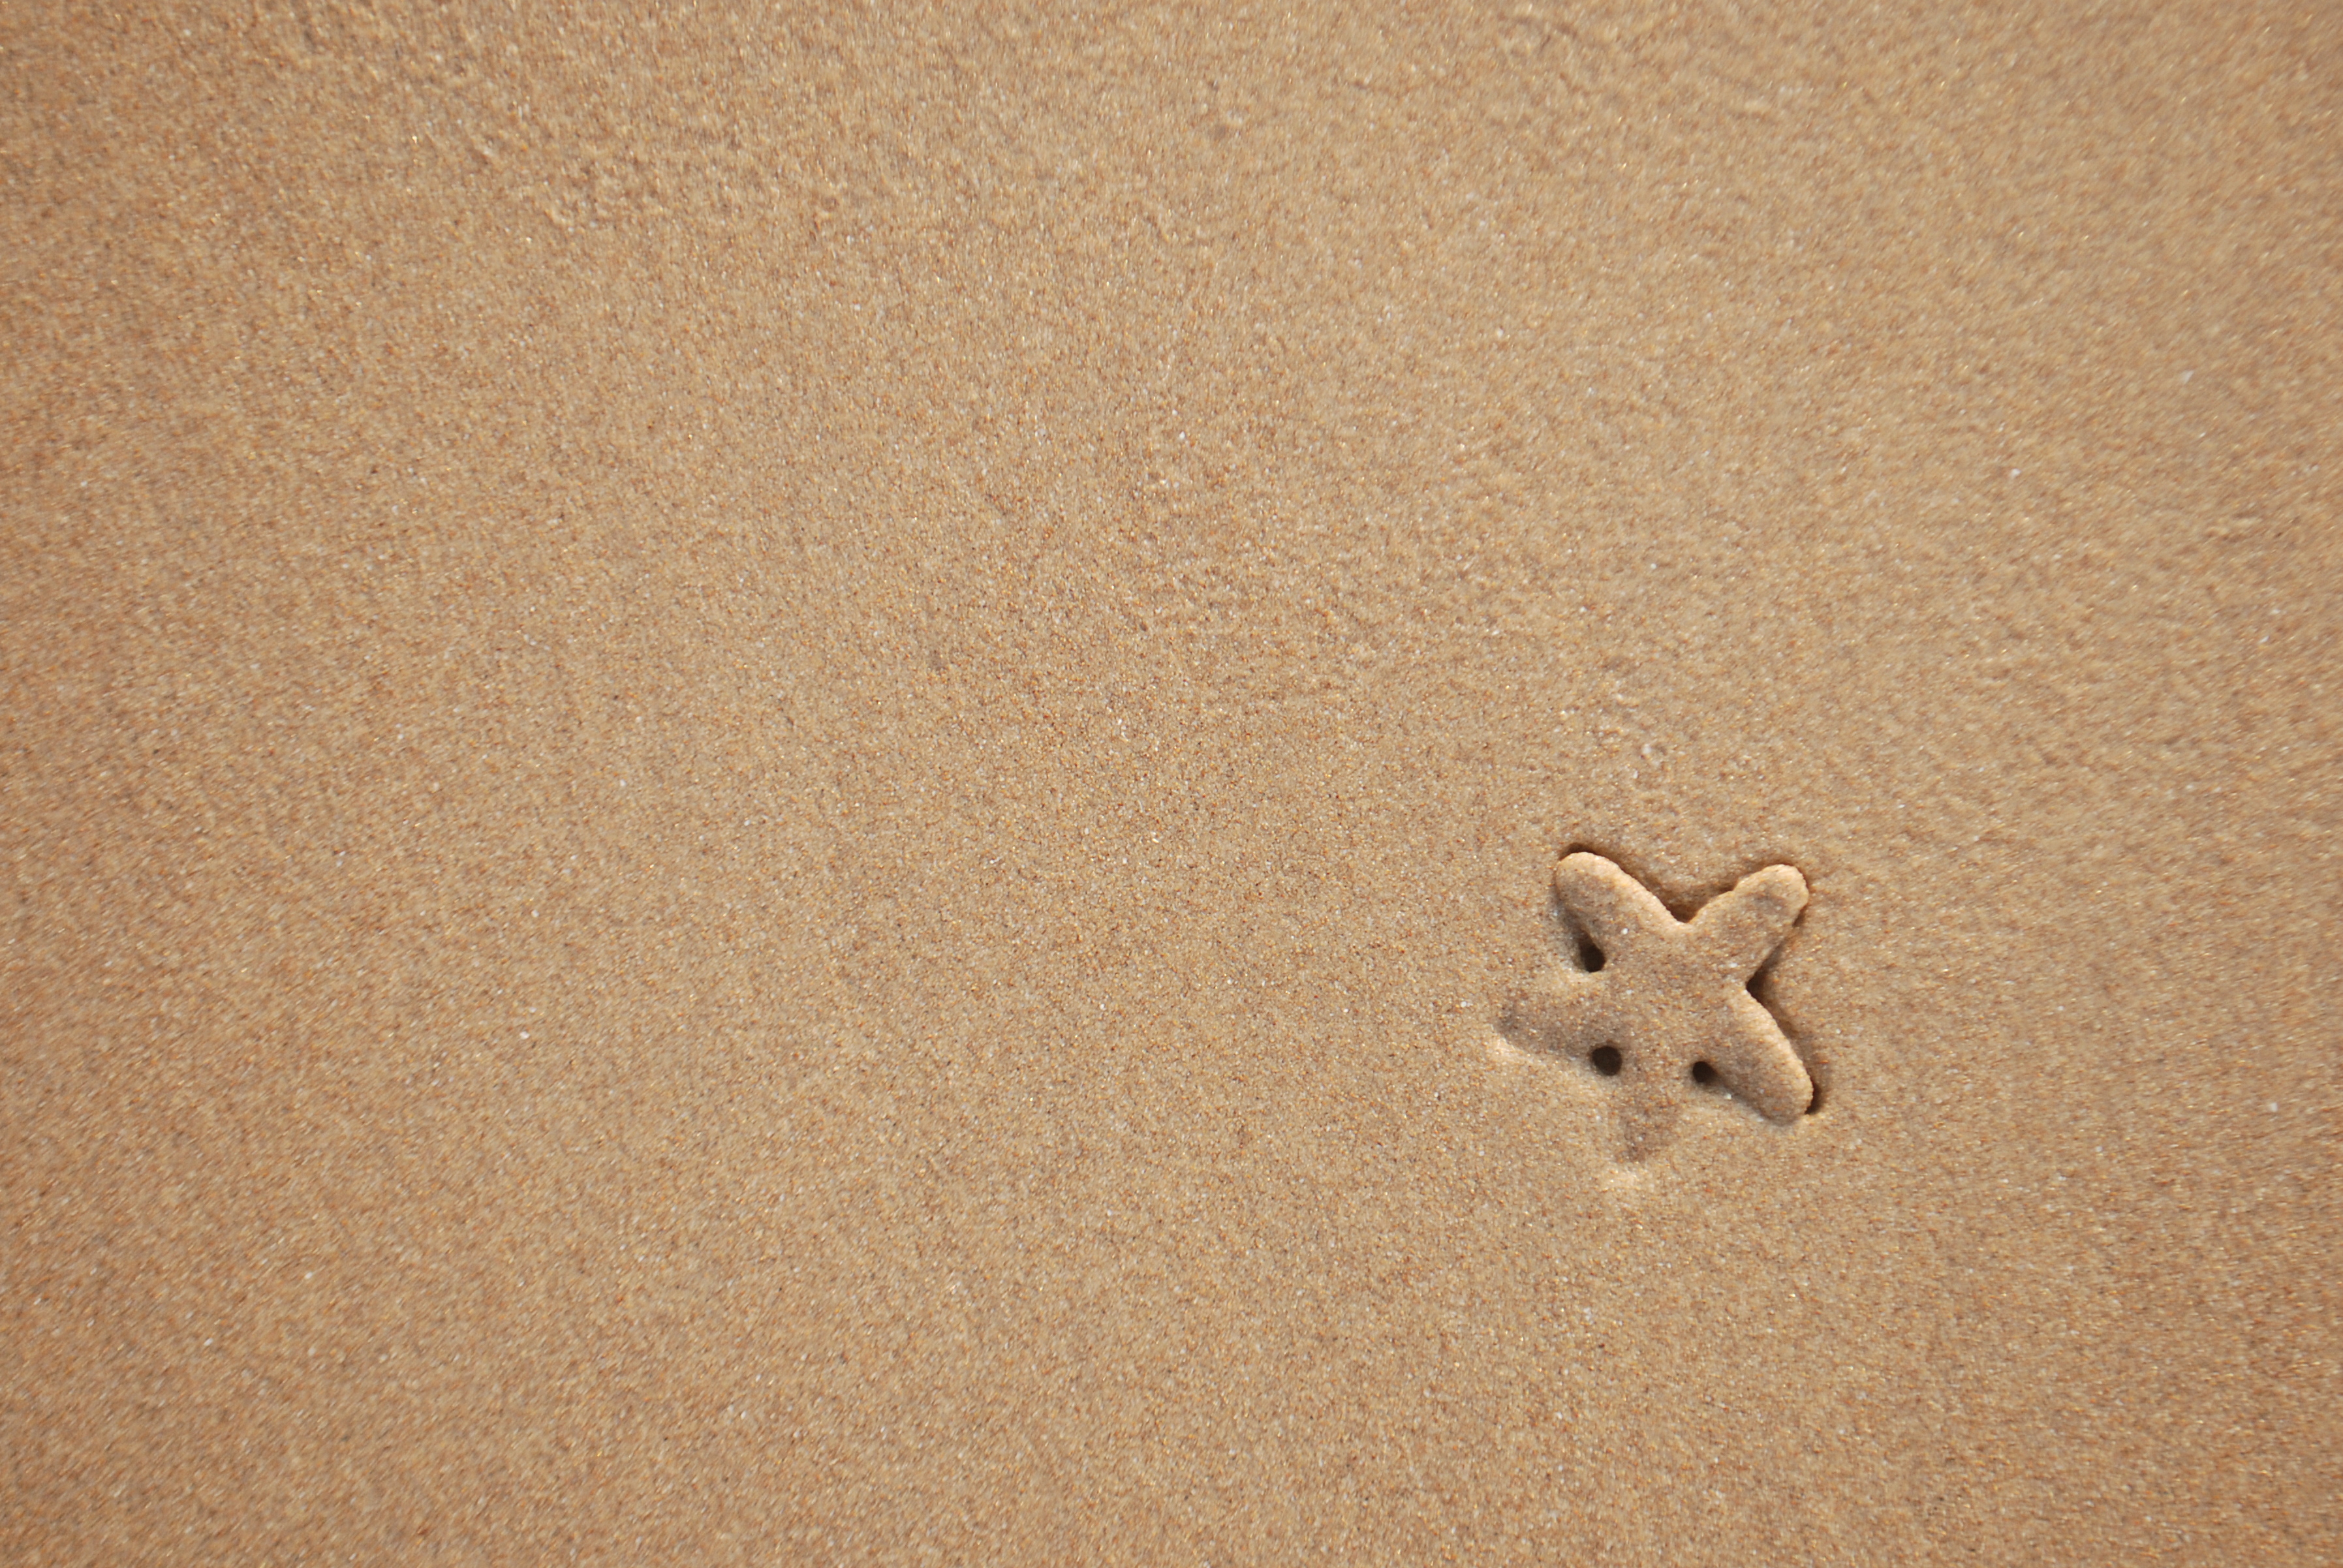 116187 download wallpaper Minimalism, Starfish, Sand, Beach, Texture screensavers and pictures for free